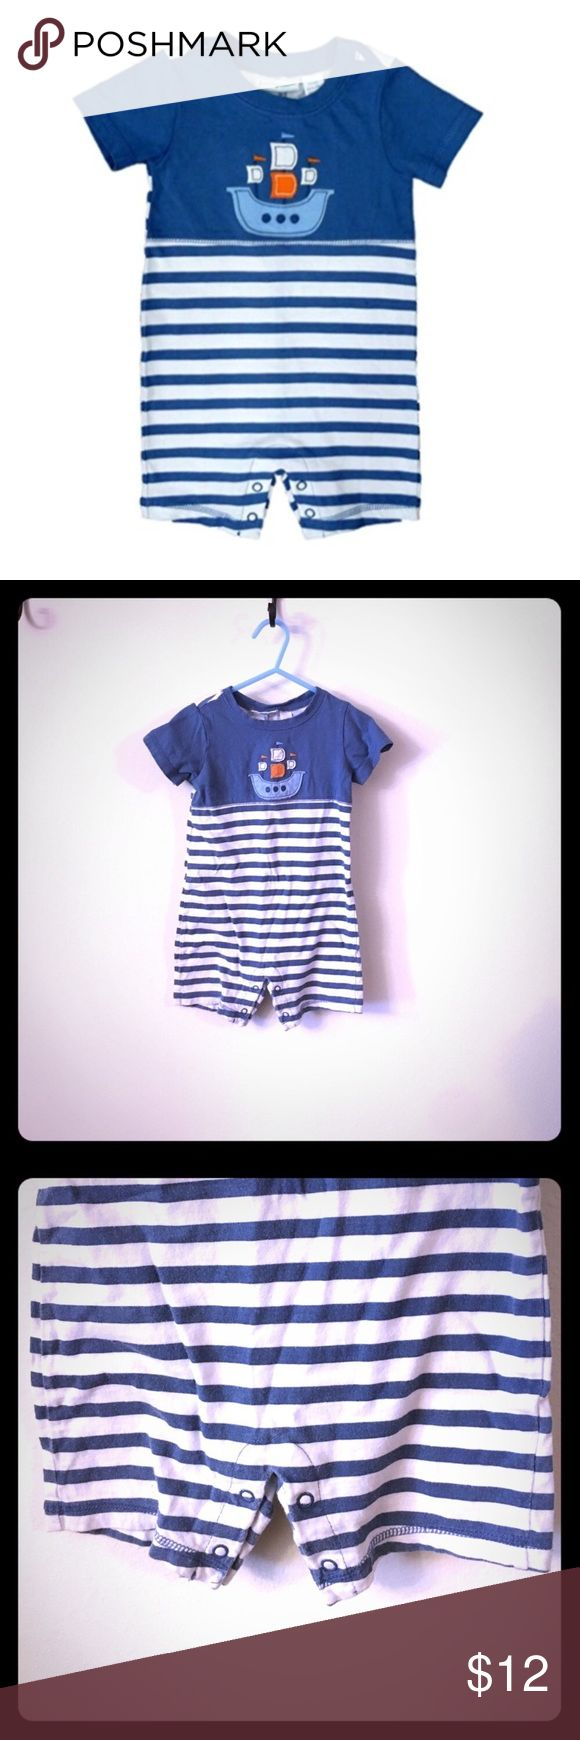 "First Impressions sleeveless nautical romper 24M  Same day shipping (excluding Sun/holidays or orders placed after P.O. Closed) ❤️ Add all of your likes to a bundle and make me an offer!  This adorable Romper is nautical themed with snap crotch closure for easy diaper changes. It is 100% cotton. The brand is ""First Impressions"". Blue and white stripes with a sailboat embroidered design. Loose fitting in the legs to allow your little one to move comfortably. See close up photo of 2 very small…"